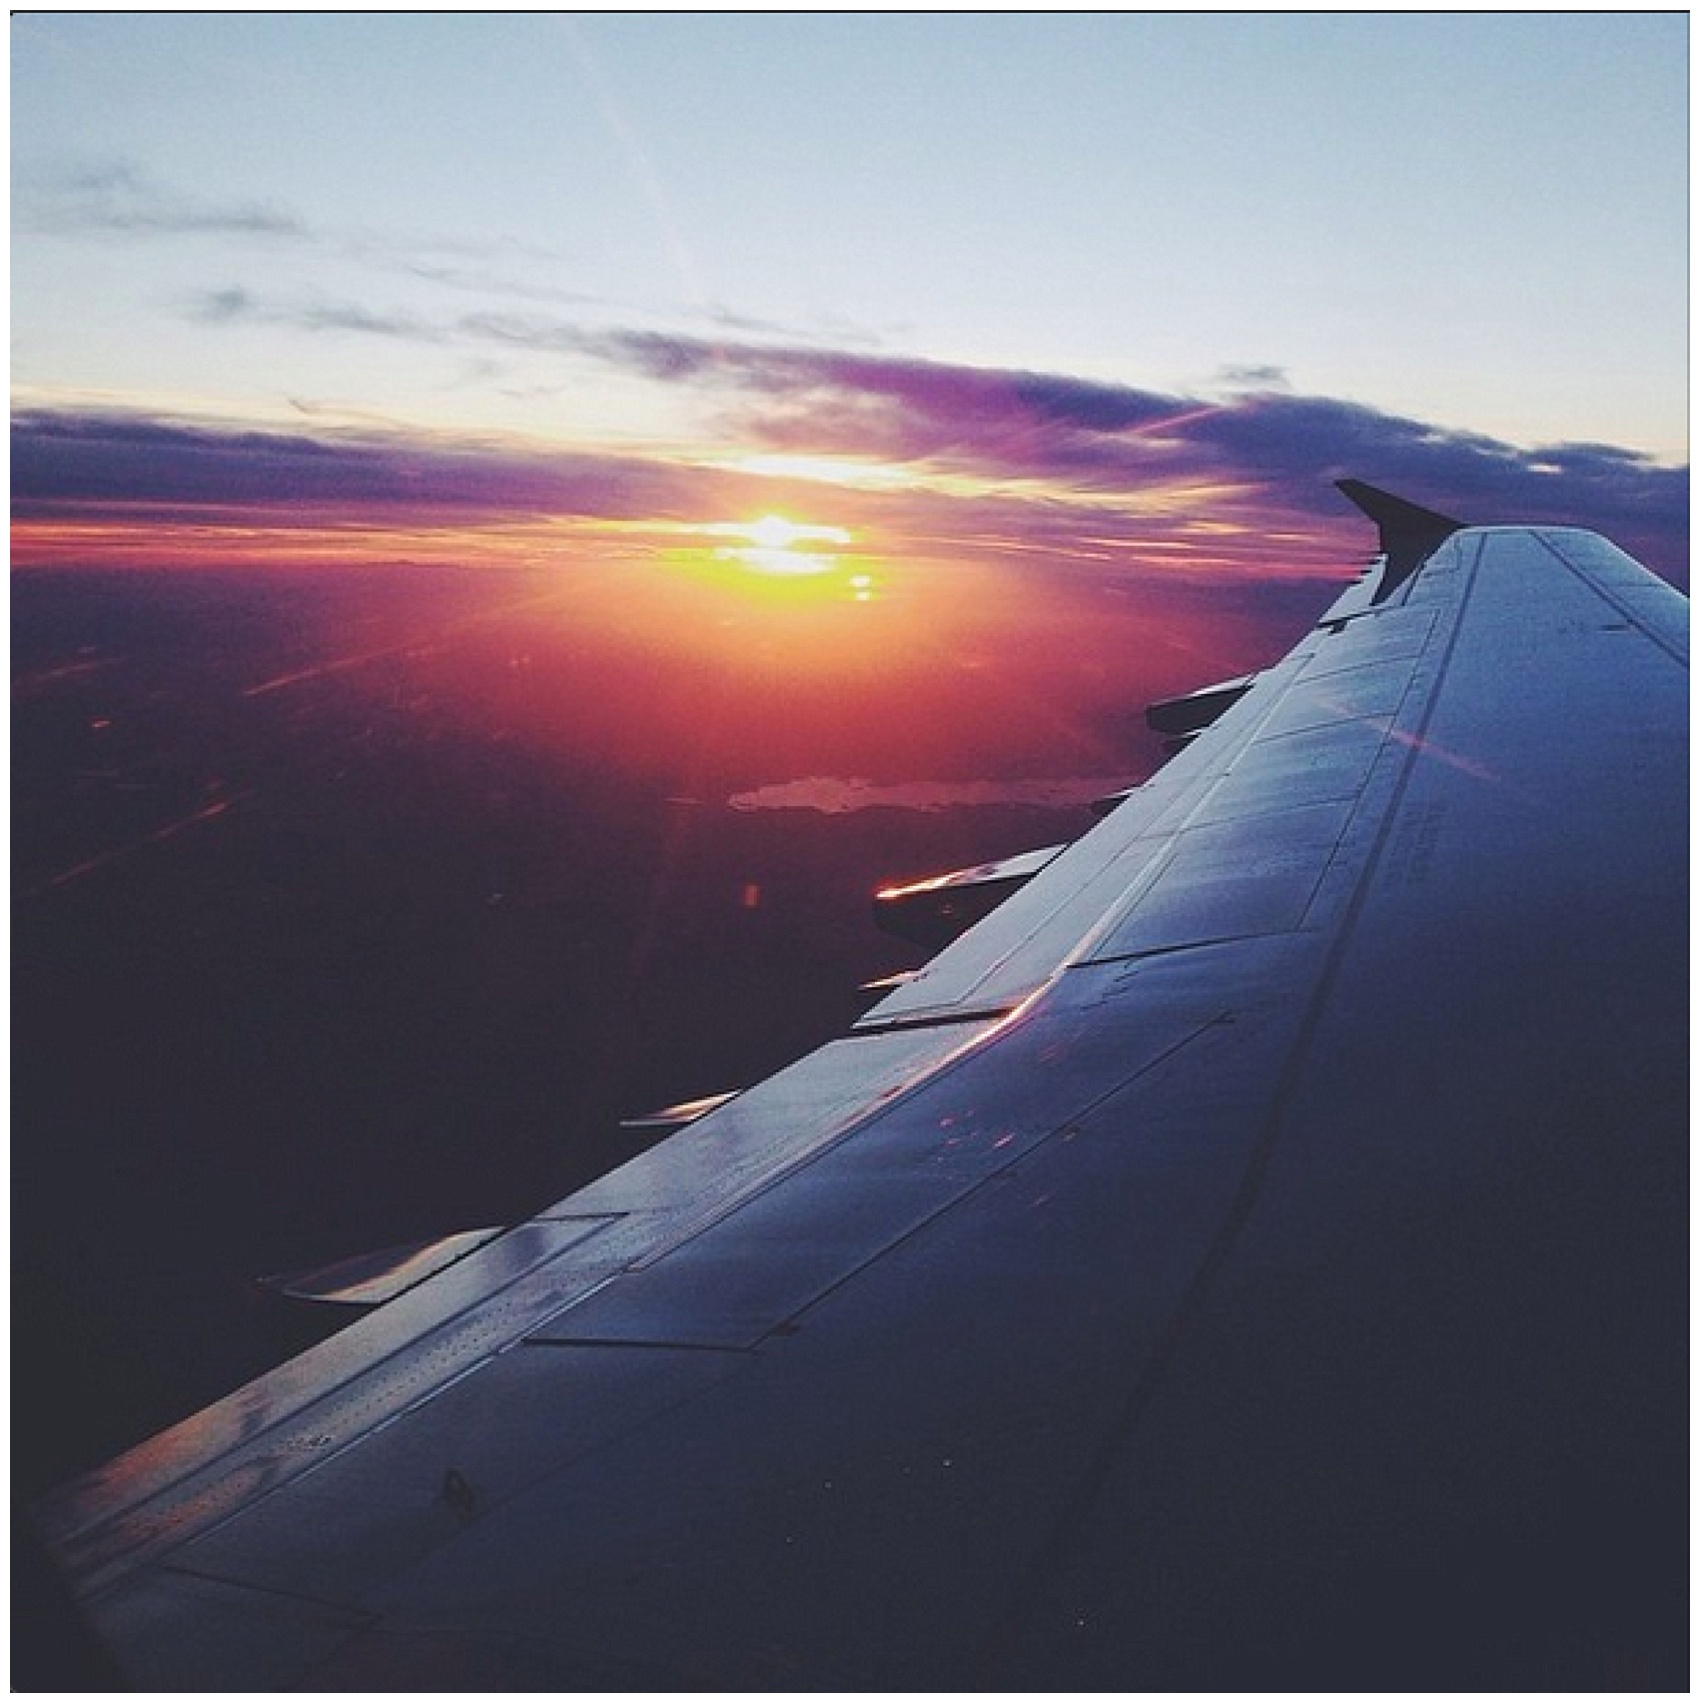 airplanesunset_myyearinstagram.jpg